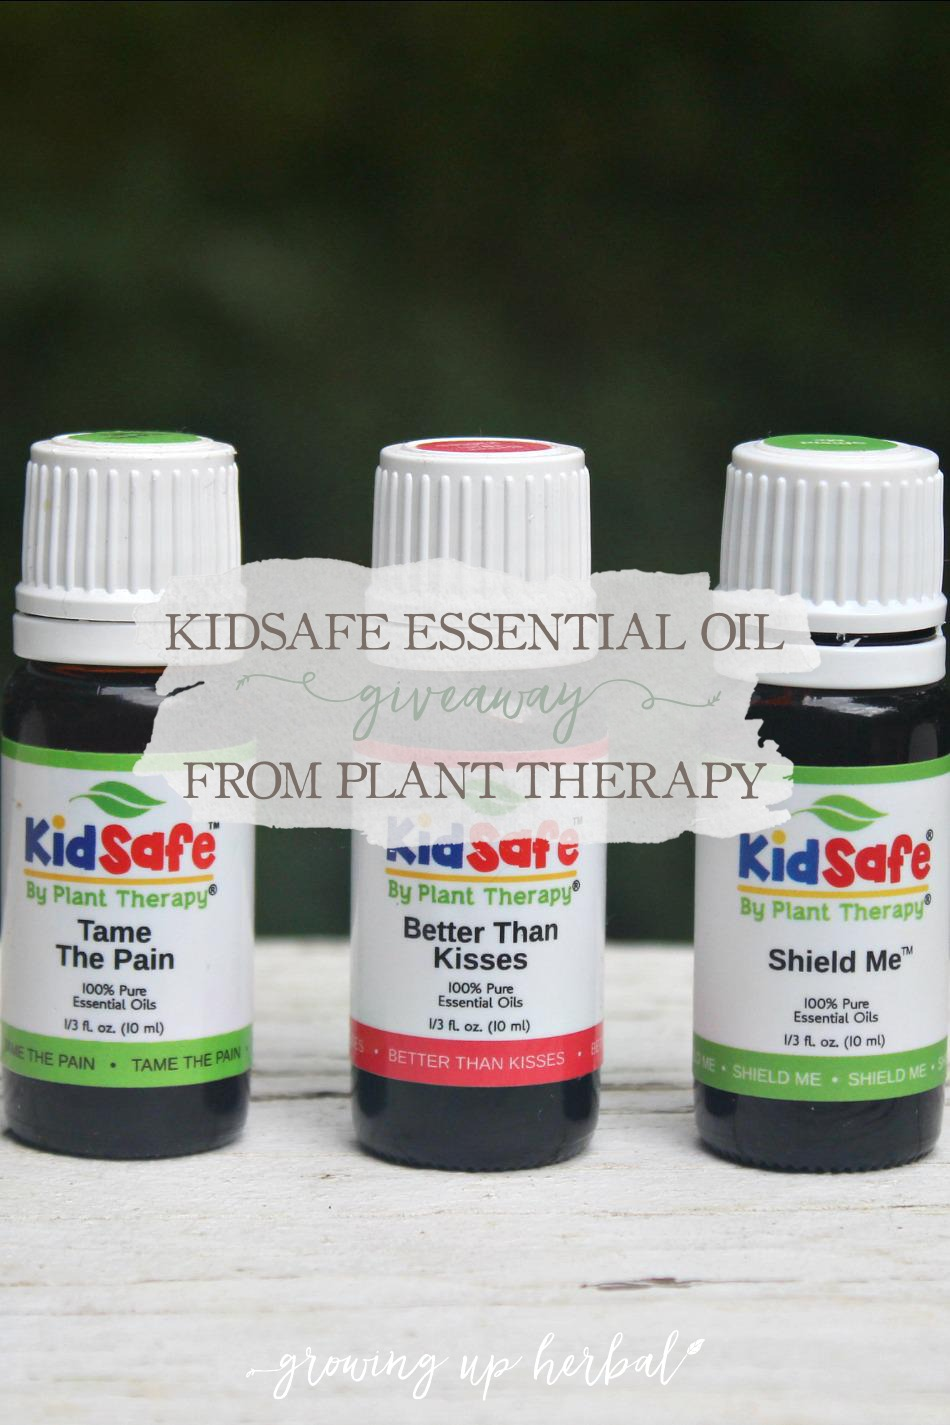 KidSafe Essential Oil Giveaway From Plant Therapy